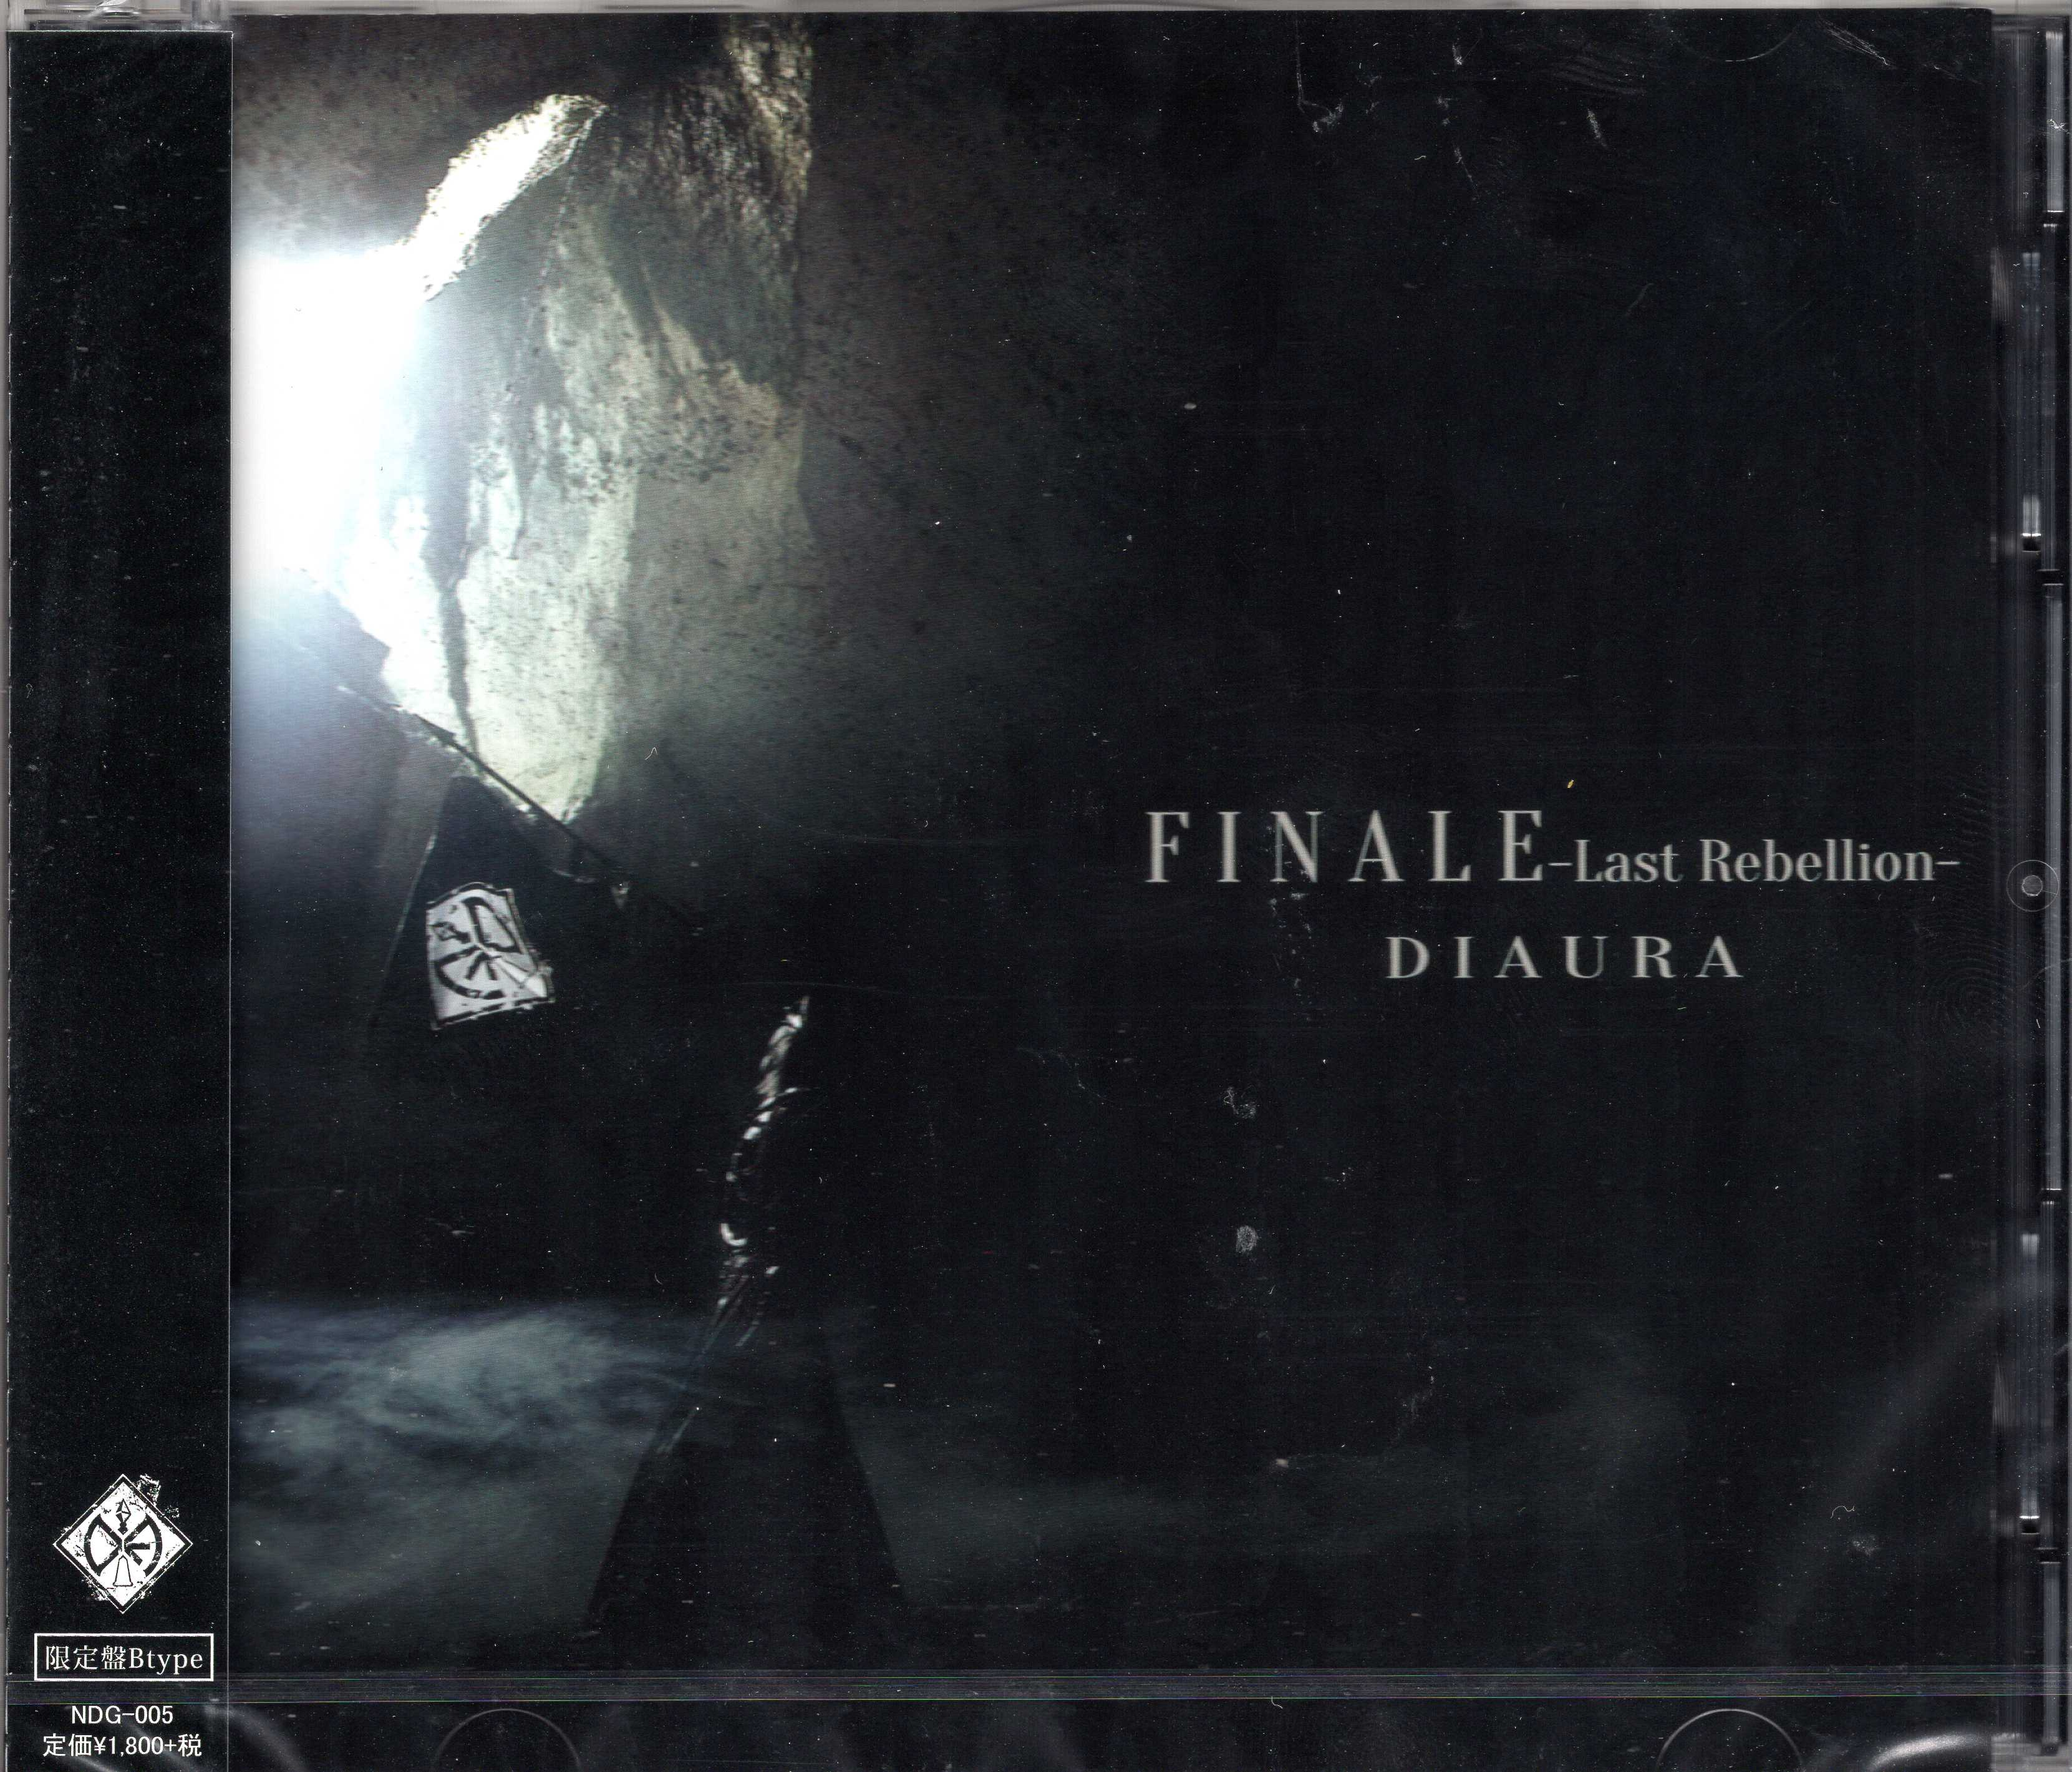 ディオーラ の CD 【B Type】FINALE-Last Rebellion-